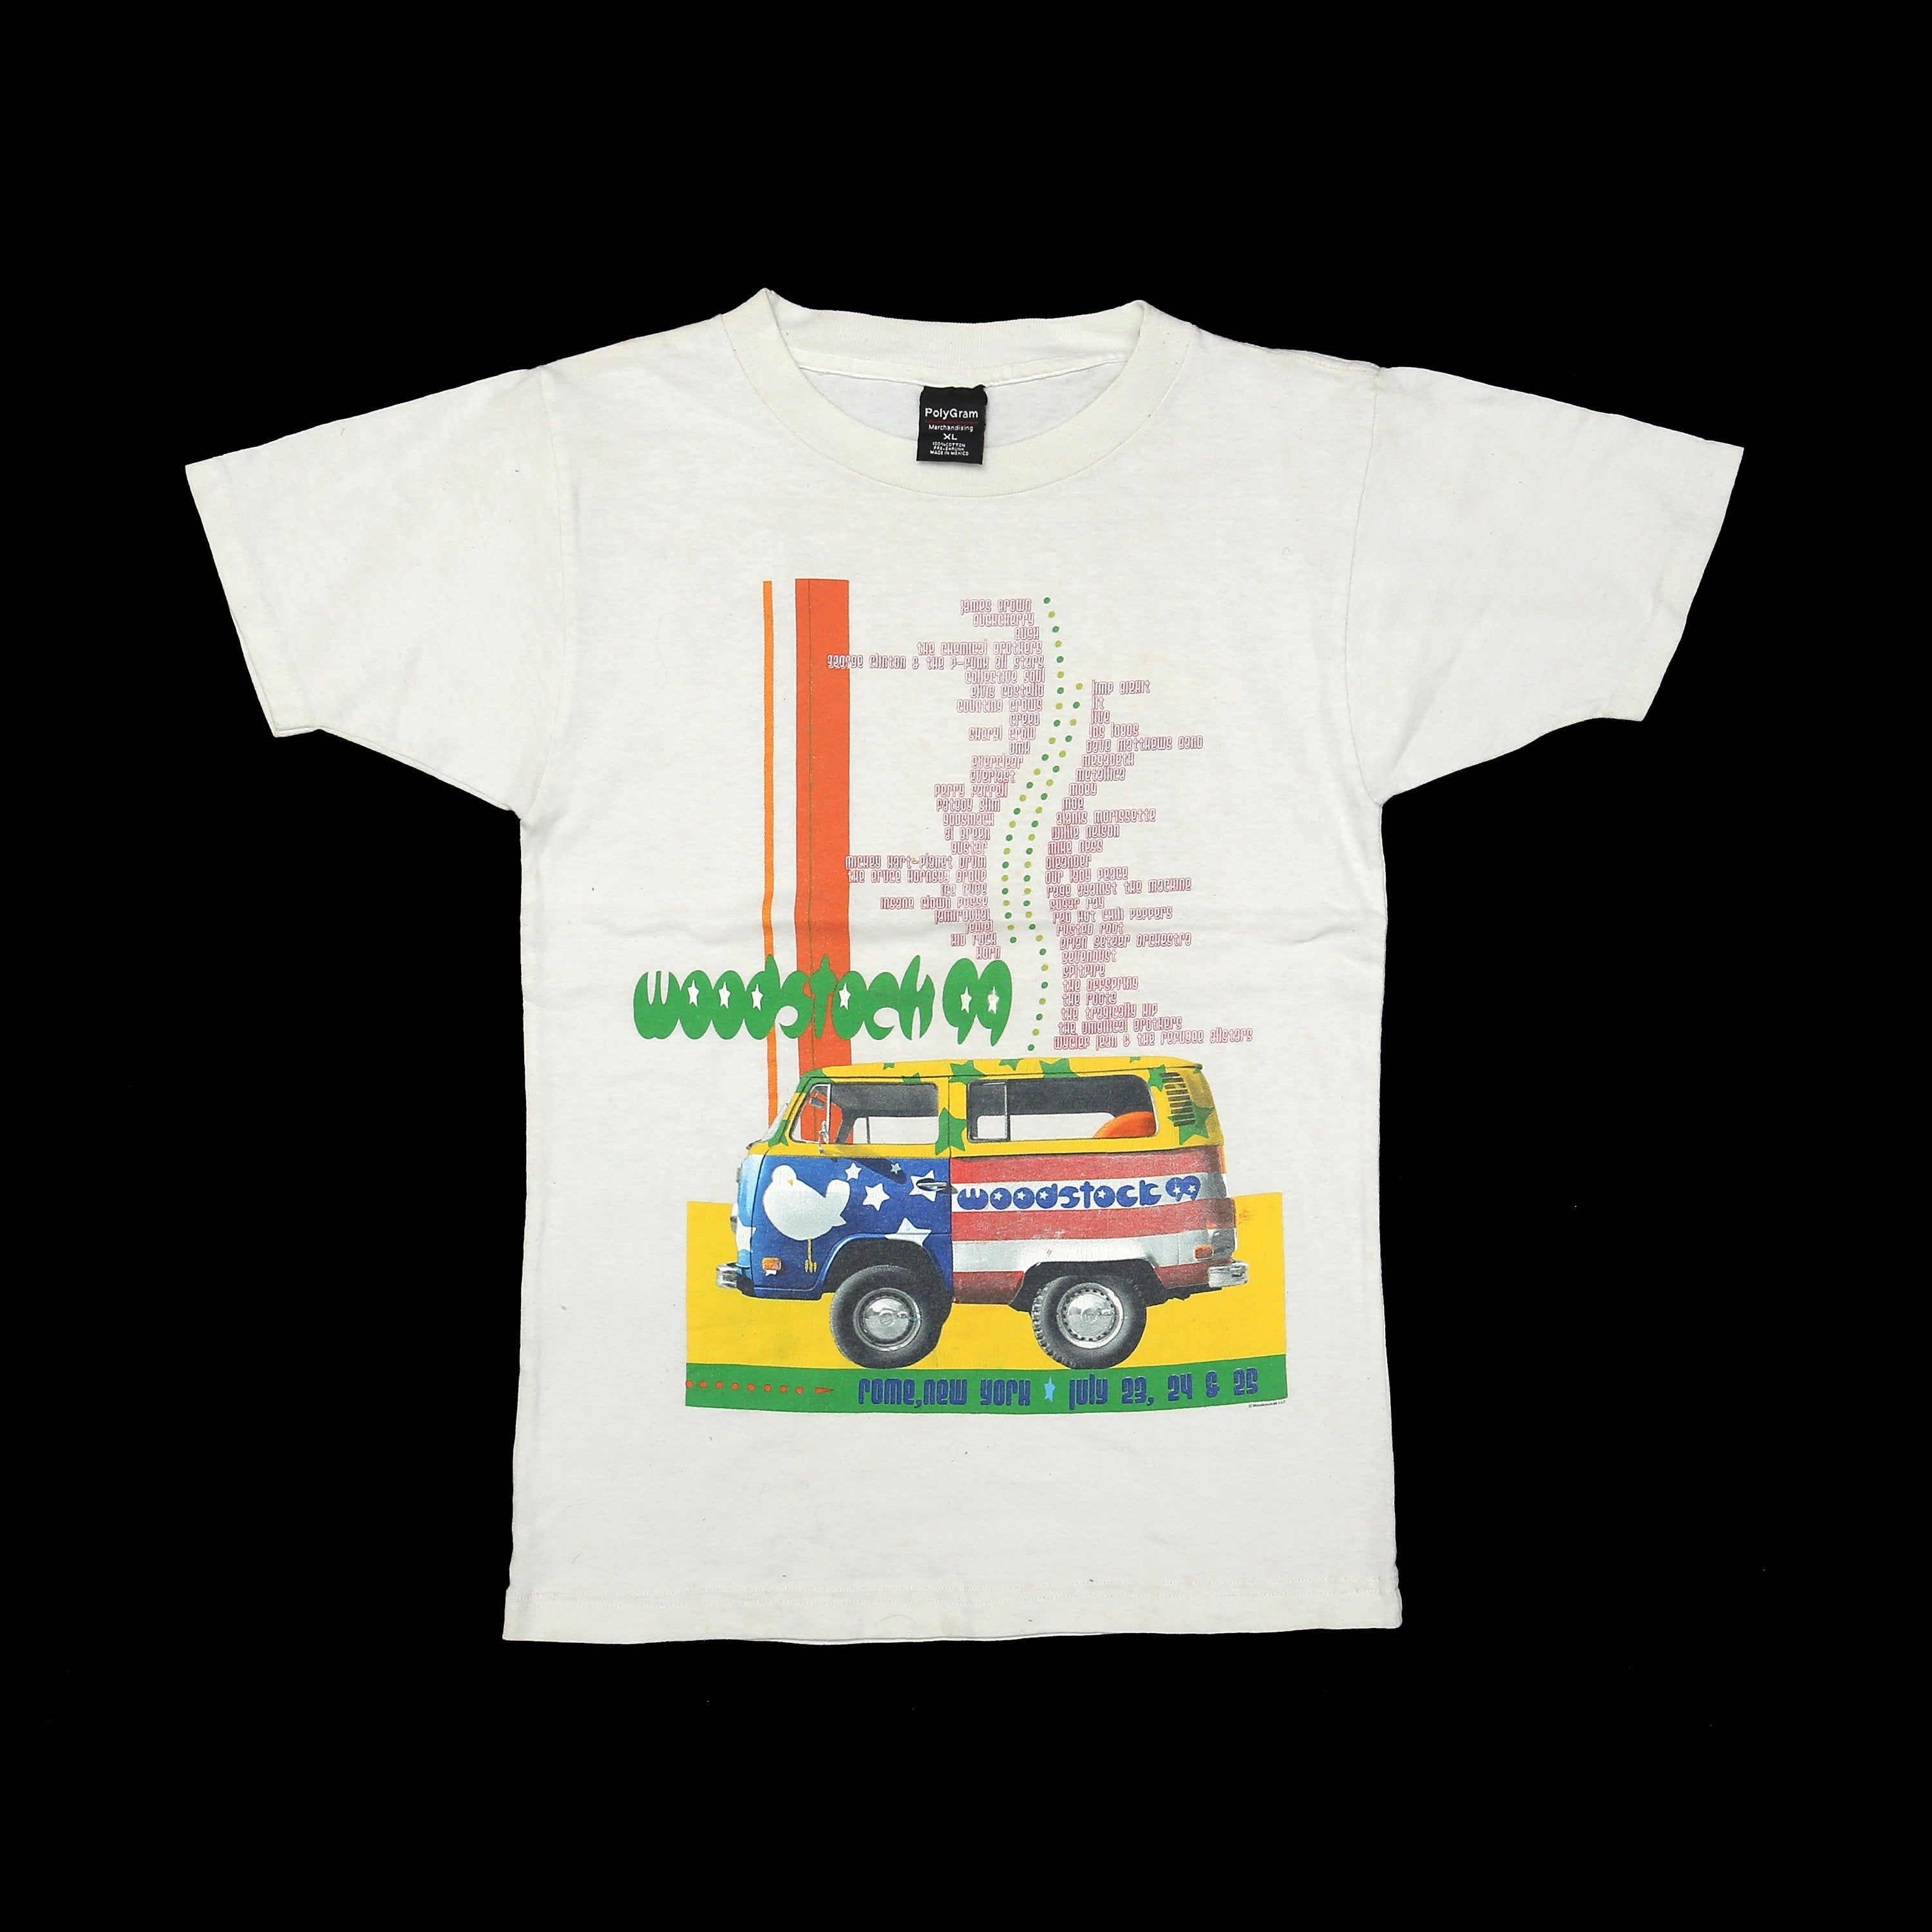 Vintage 90s Woodstock 1999 Polygram Merchandising Tee Single Stitch Hippies Rock Event T Shirt In 2020 With Images T Shirt Vintage Band Tees Tees